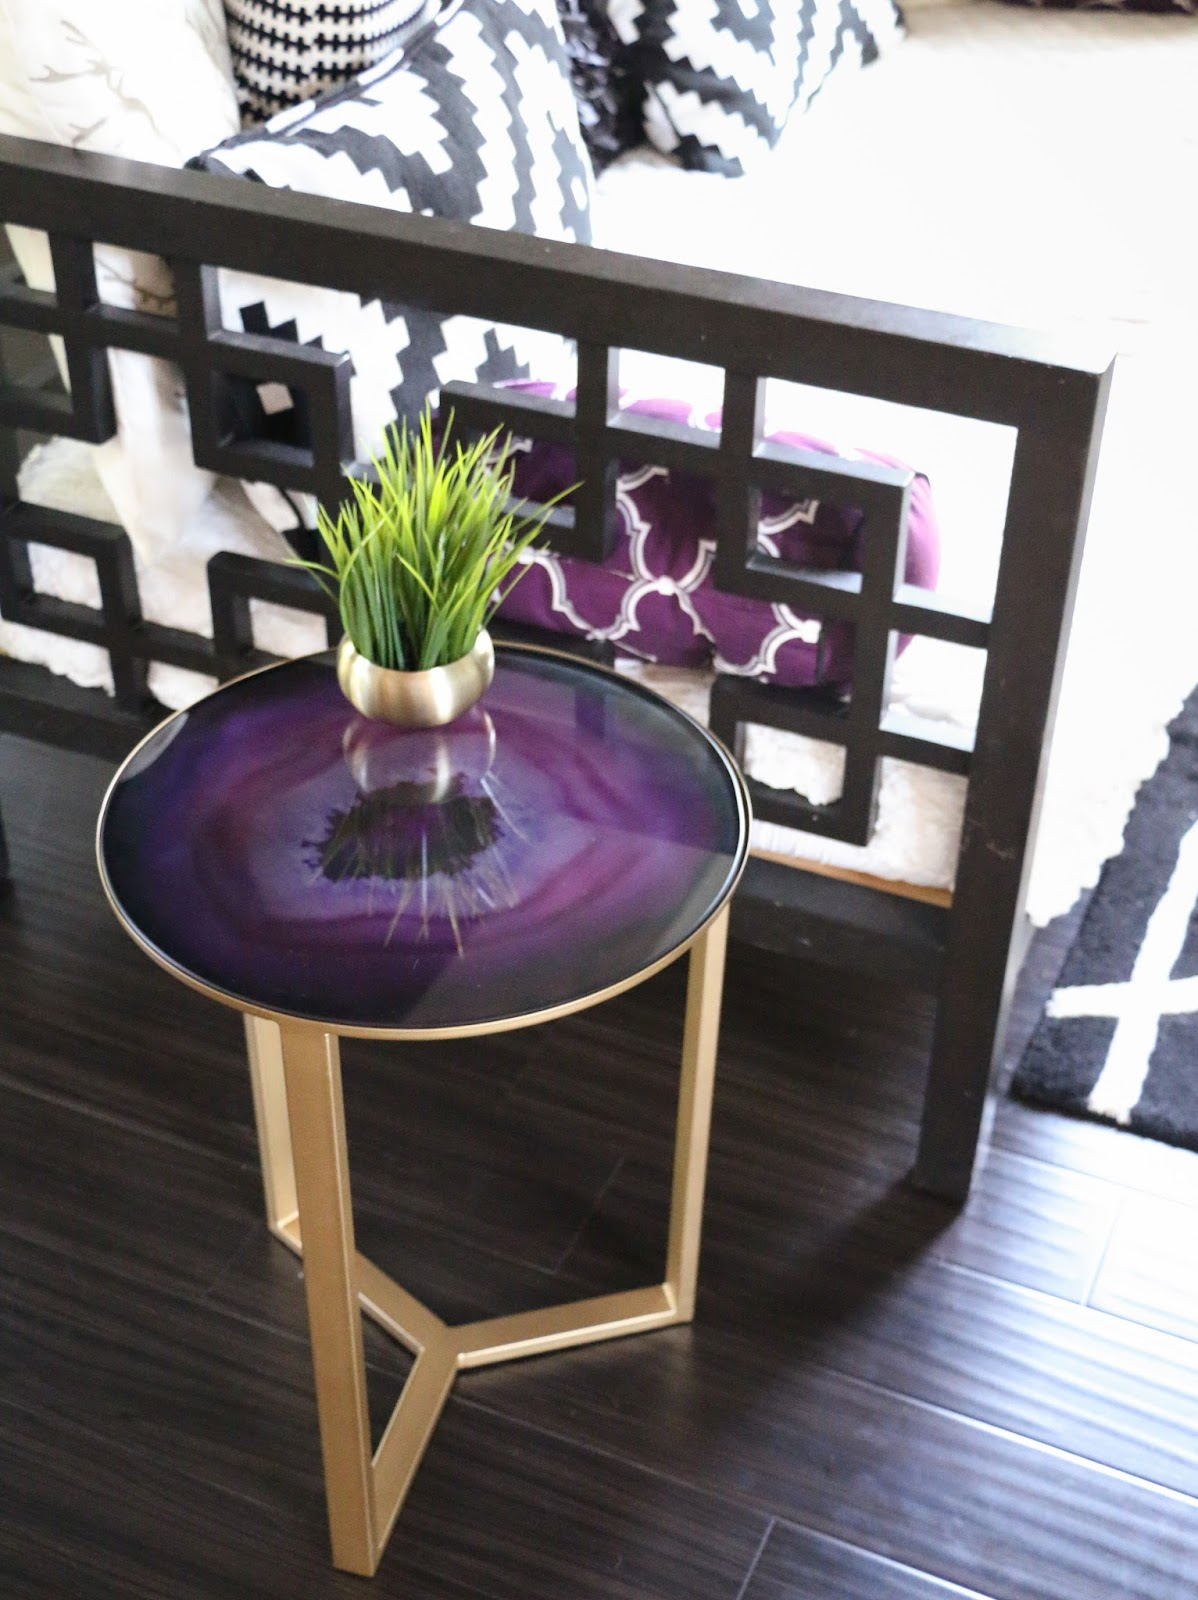 Decorate It A Collection Of Side Tables A Kailo Chic Life